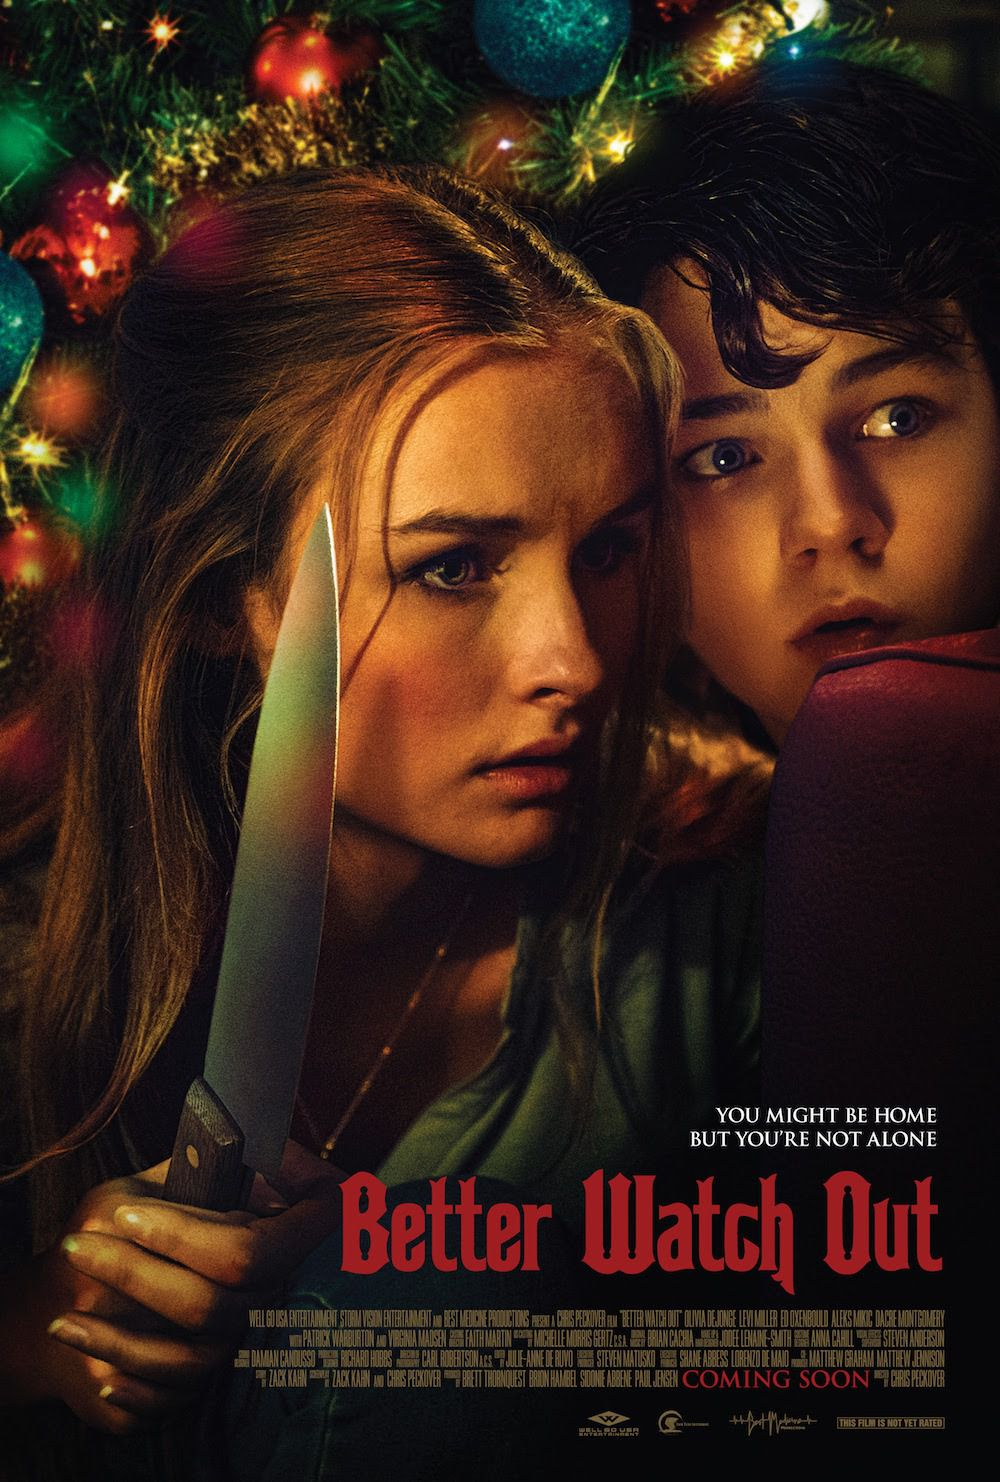 Better Watch Out - Safe Neighborhood - Virginia Madsen - Patrick Warburton - Olivia DeJonge - film poster